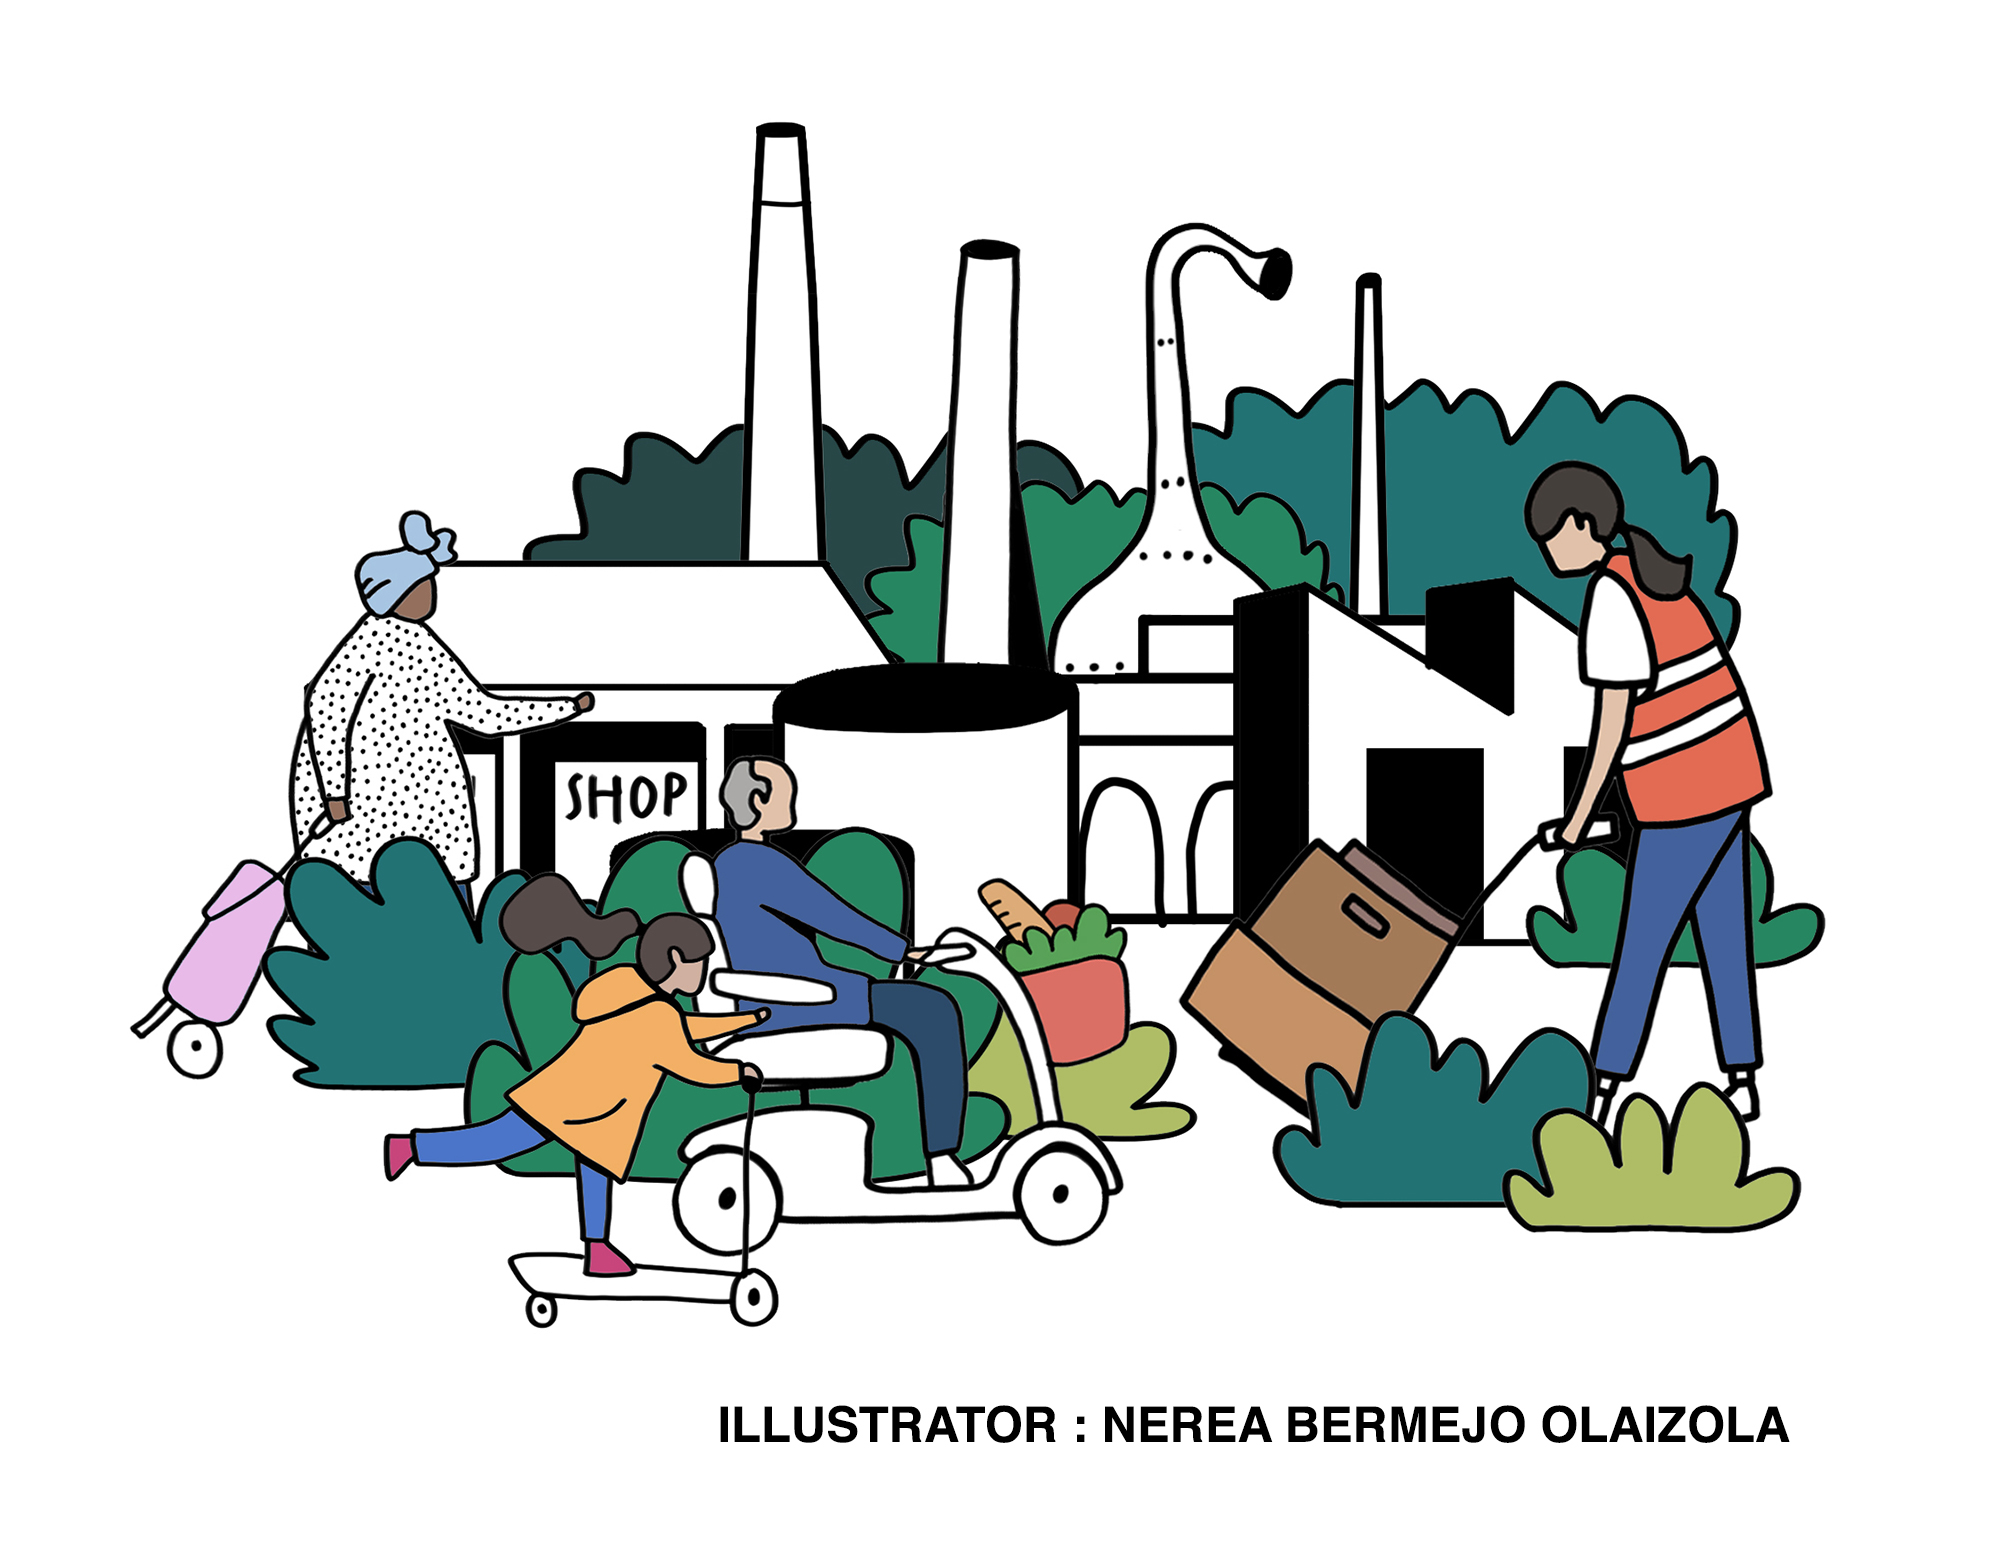 We have worked with the award-winning Architectural Illustrator Nerea Bermejo to develop an illustrative map and visualisations for the Garden Town. The drawings aimed to be engaging and lively, conveying the aspirations of the proposed Garden Town along with the rich narrative of Harlow. We hope this helps to communicate the Garden Town vision in a spatial way and which celebrates the area's existing identity and ambitious future in a clear, easy to interpret and informal way.